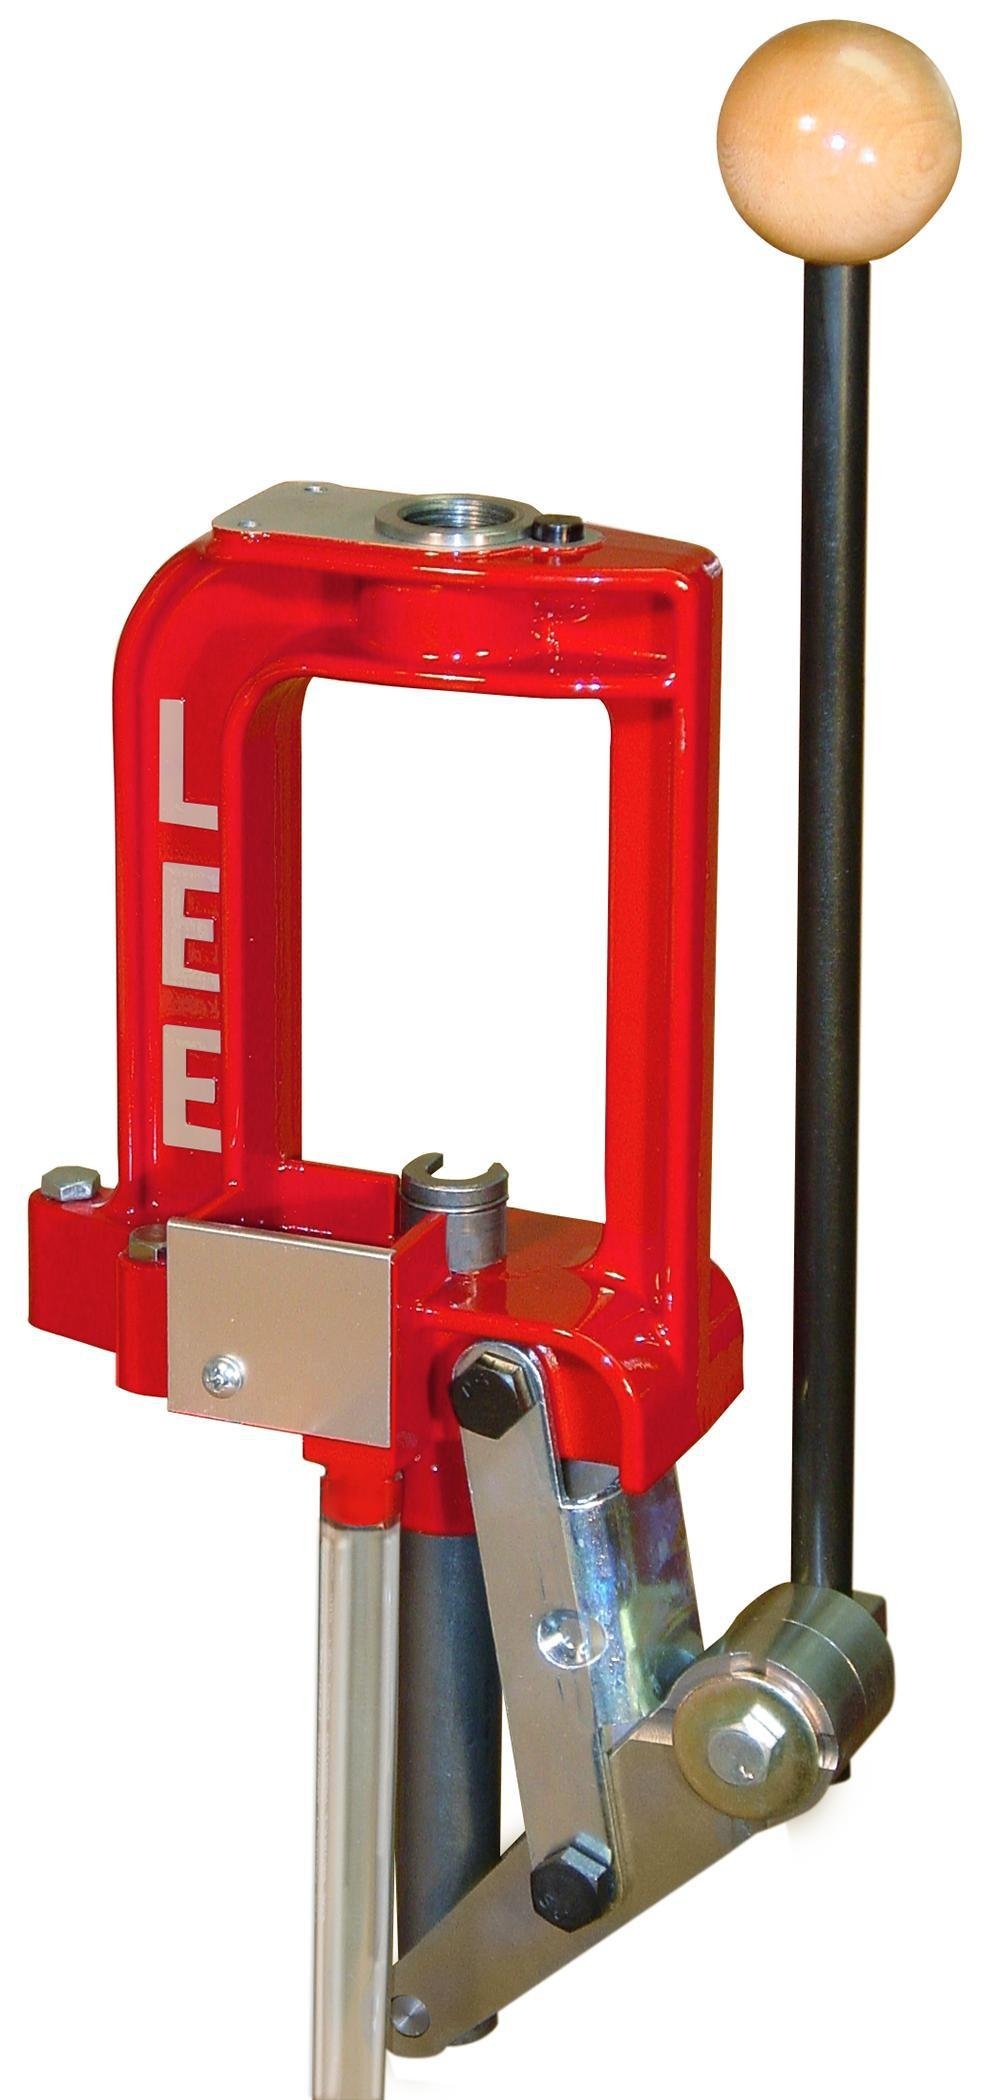 LEE PRECISION Breech Lock Challenger Press (Red) by LEE PRECISION